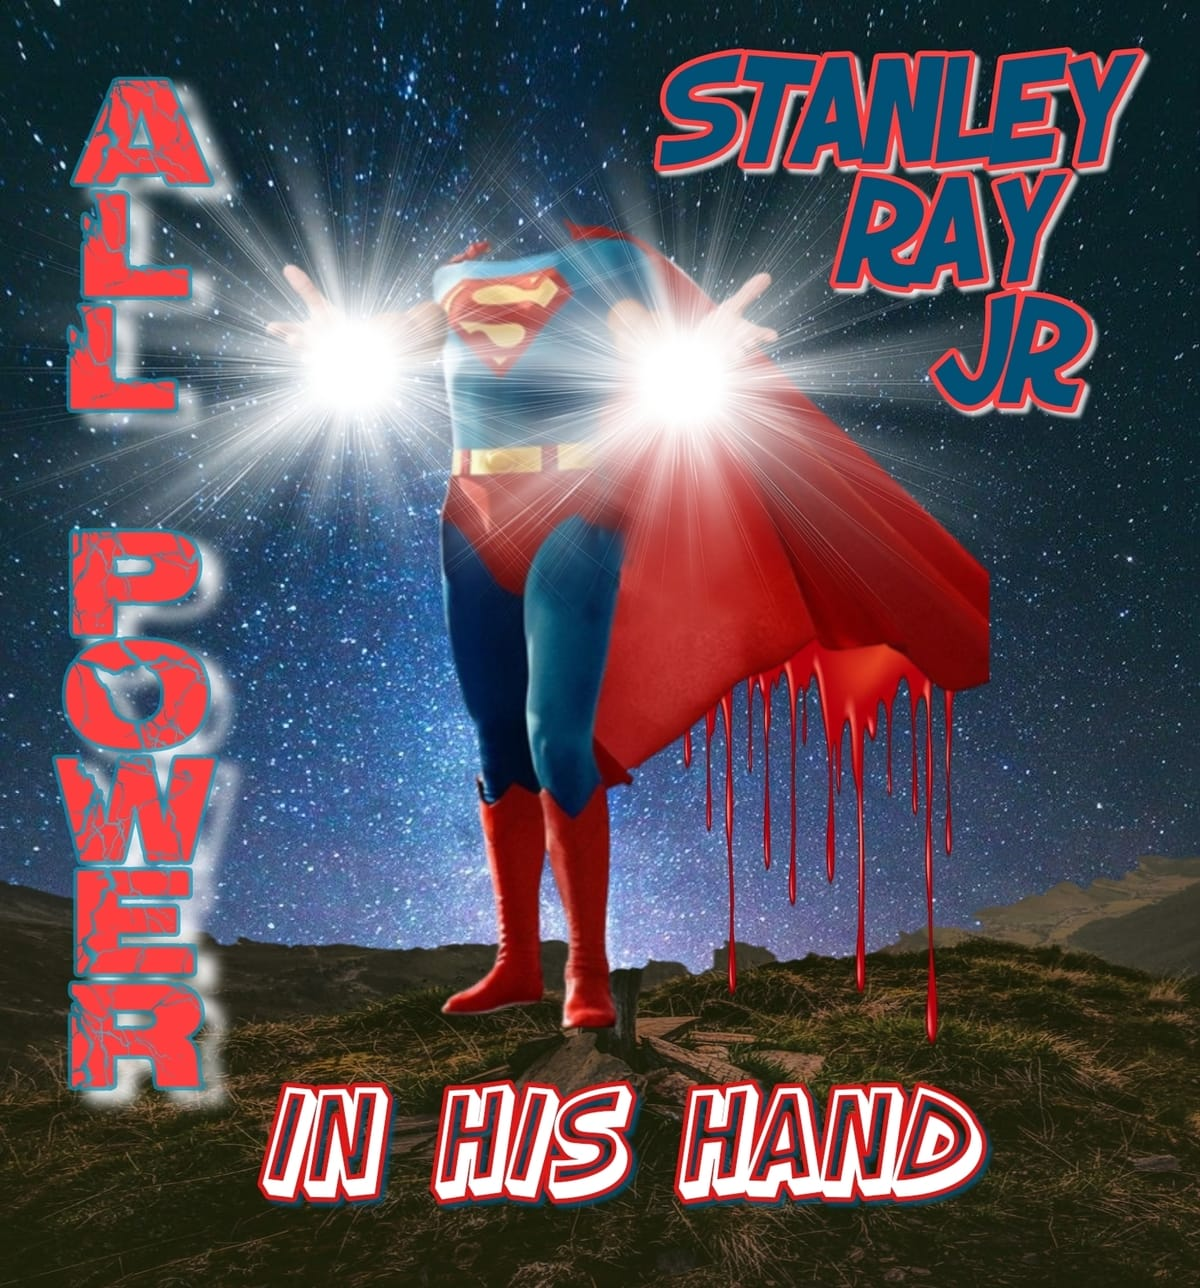 "Stanley Ray Jr. Releases New Song ""All Power In His Hand"""